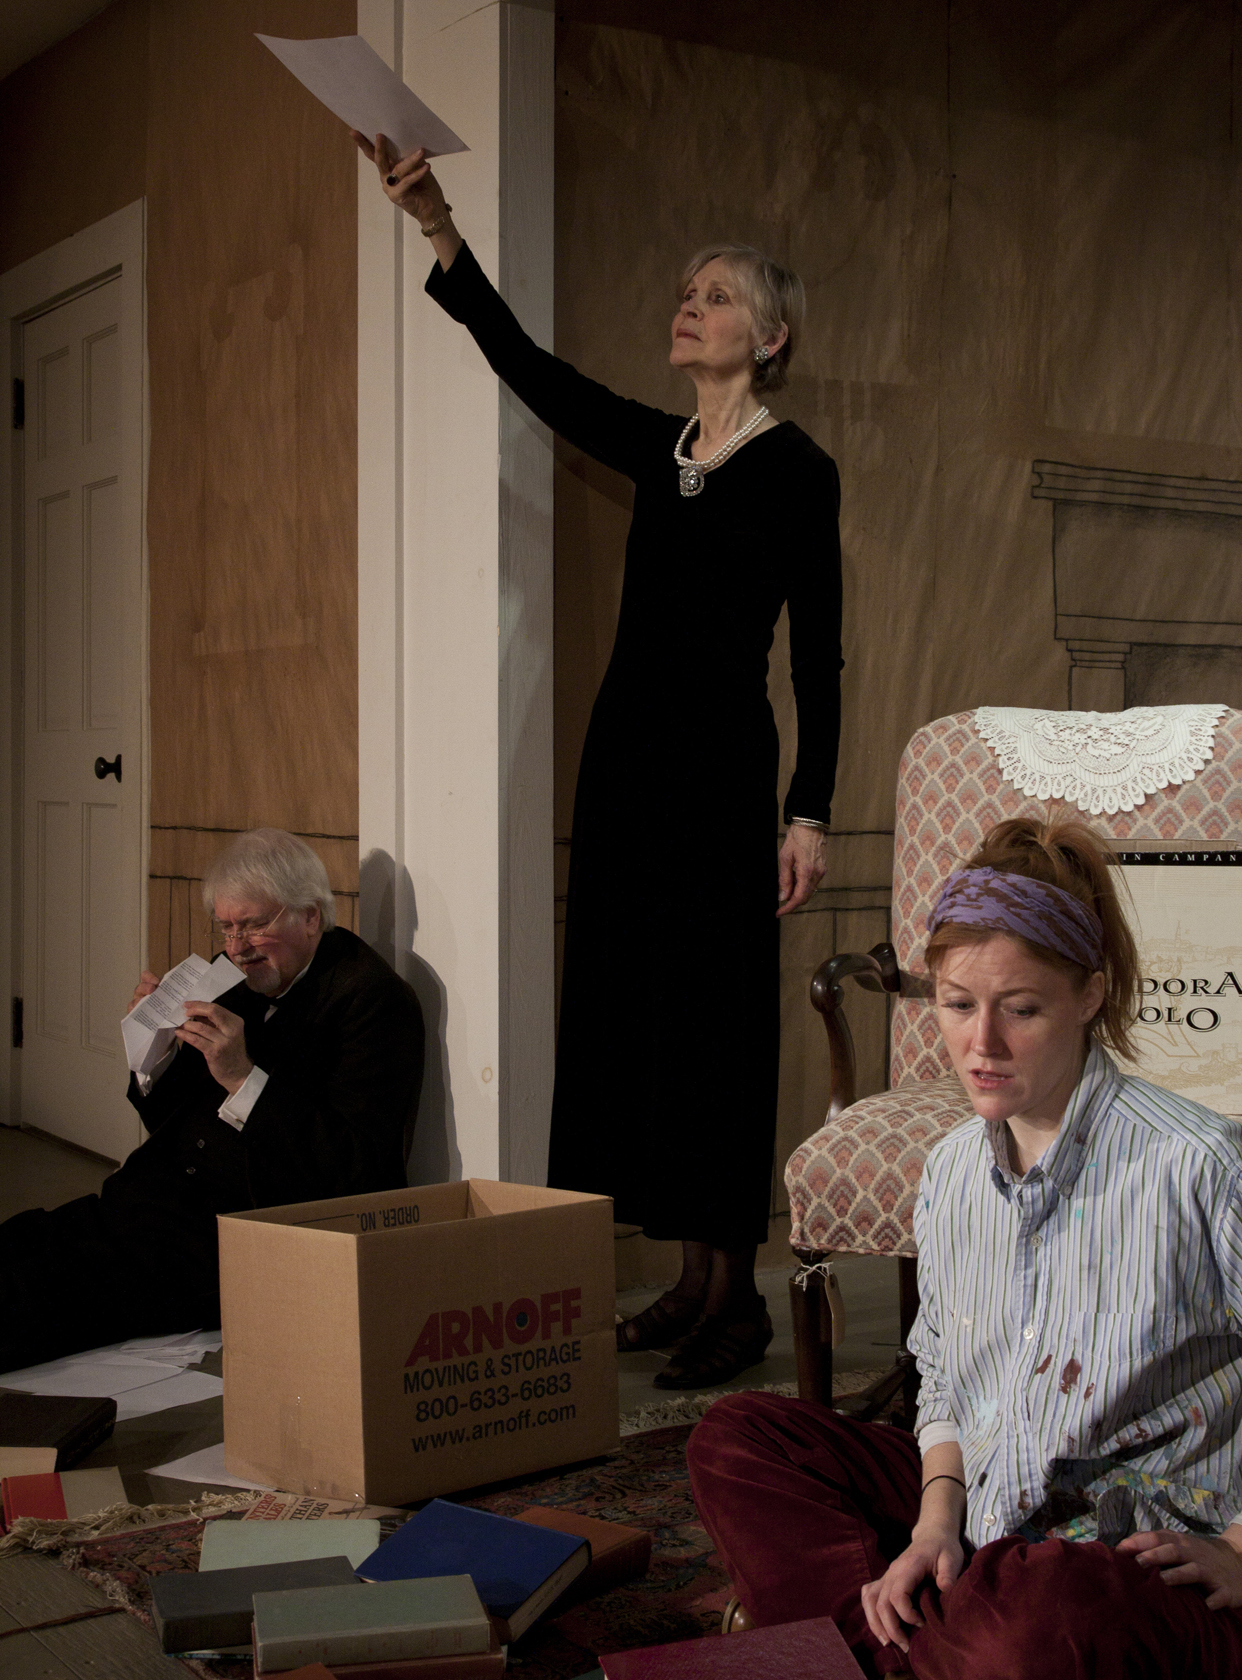 Painting Churches - Written by Tina Howe, performed by Ted Pugh, Fern Sloan, and Sandra Struthers, and was a co-production with Walking the Dog, directed by David Anderson.